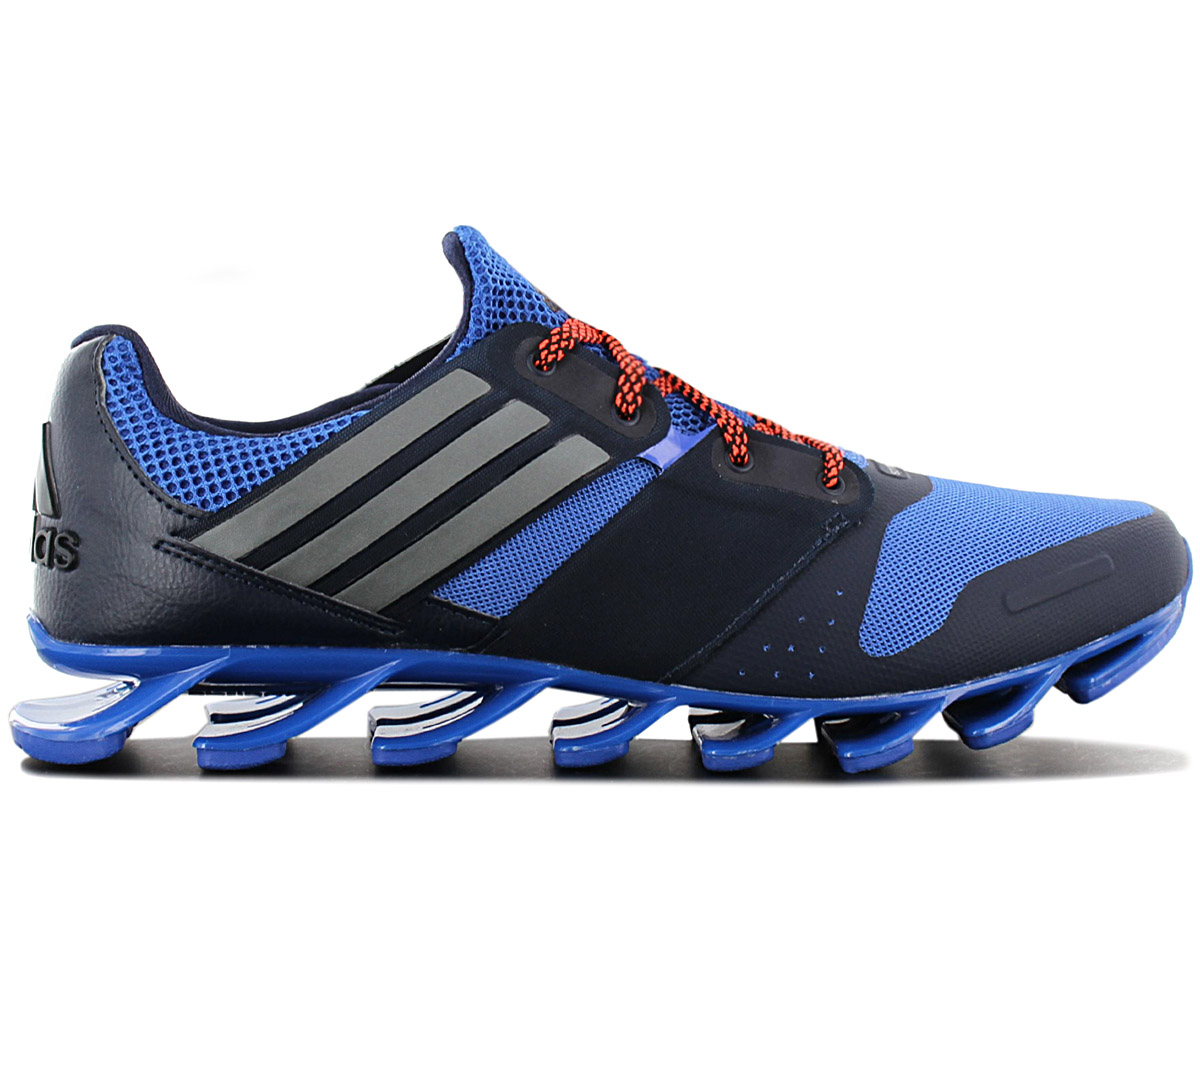 code promo 36d3a e4716 Details about Adidas Springblade Solyce M Men's Shoes AQ7537 Running Shoes  Trainers